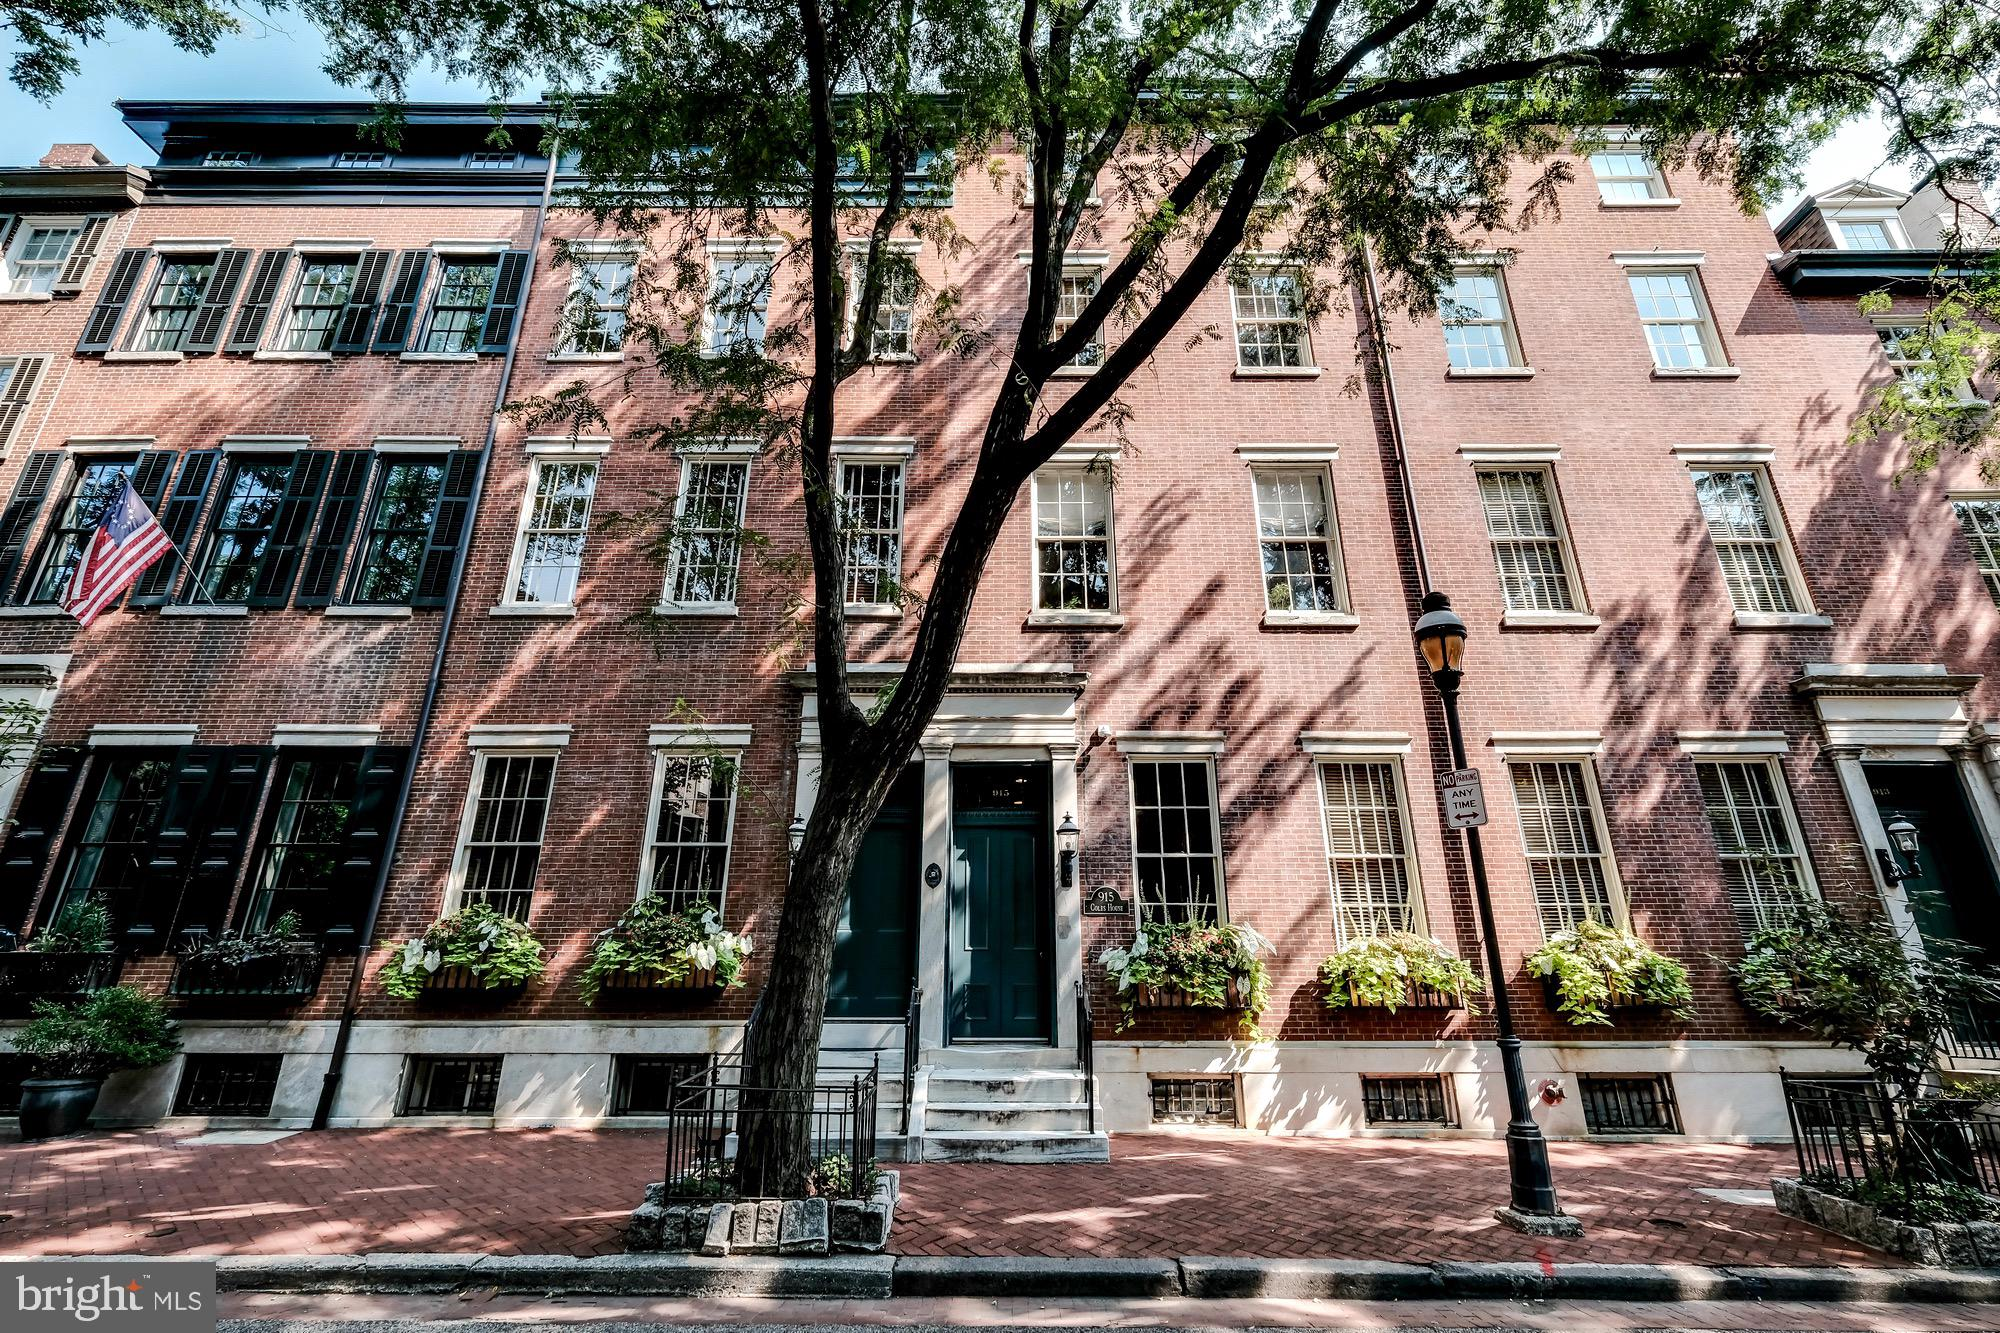 COLES HOUSE CONDOMINIUMS: WASHINGTON SQUARE'S premiere BOUTIQUE condominium property. This TWO bedroom, two and a half bath, bi LEVEL residence with wide-plank hardwood floors throughout, TWO PRIVATE DECKS and its OWN PARKING SPACE is a MUST SEE! Take the elevator up to PERFECTION. GRACIOUS, SPACIOUS, and OPEN living and dining area. Custom kitchen with ENORMOUS ISLAND and BREAKFAST bar, magnificent cabinetry, and high-end stainless steel appliances, including Wolf Range.  Dining area,that intimately accommodates two or ten, flows wonderfully into your light-filled SOUTH FACING living room. Upstairs Master bedroom with a wall of closets, custom built ins and elegant en suite bath, with double sinks, is fantastic!! Second well-proportioned bedroom and en suite bath can do double-duty as an office. Two decks with AMAZING views -- one with room for BBQ grill and dining.  Second private deck with space for relaxing, entertaining and dining. Both decks extend the living space for 6 months of the year.  Private parking space, with a direct entrance into the building and a basement storage cage make this residence a ONE OF A KIND opportunity. A quick walk to Pennsylvania and Jefferson Hospitals, Washington Square, and some of THE BEST dining.